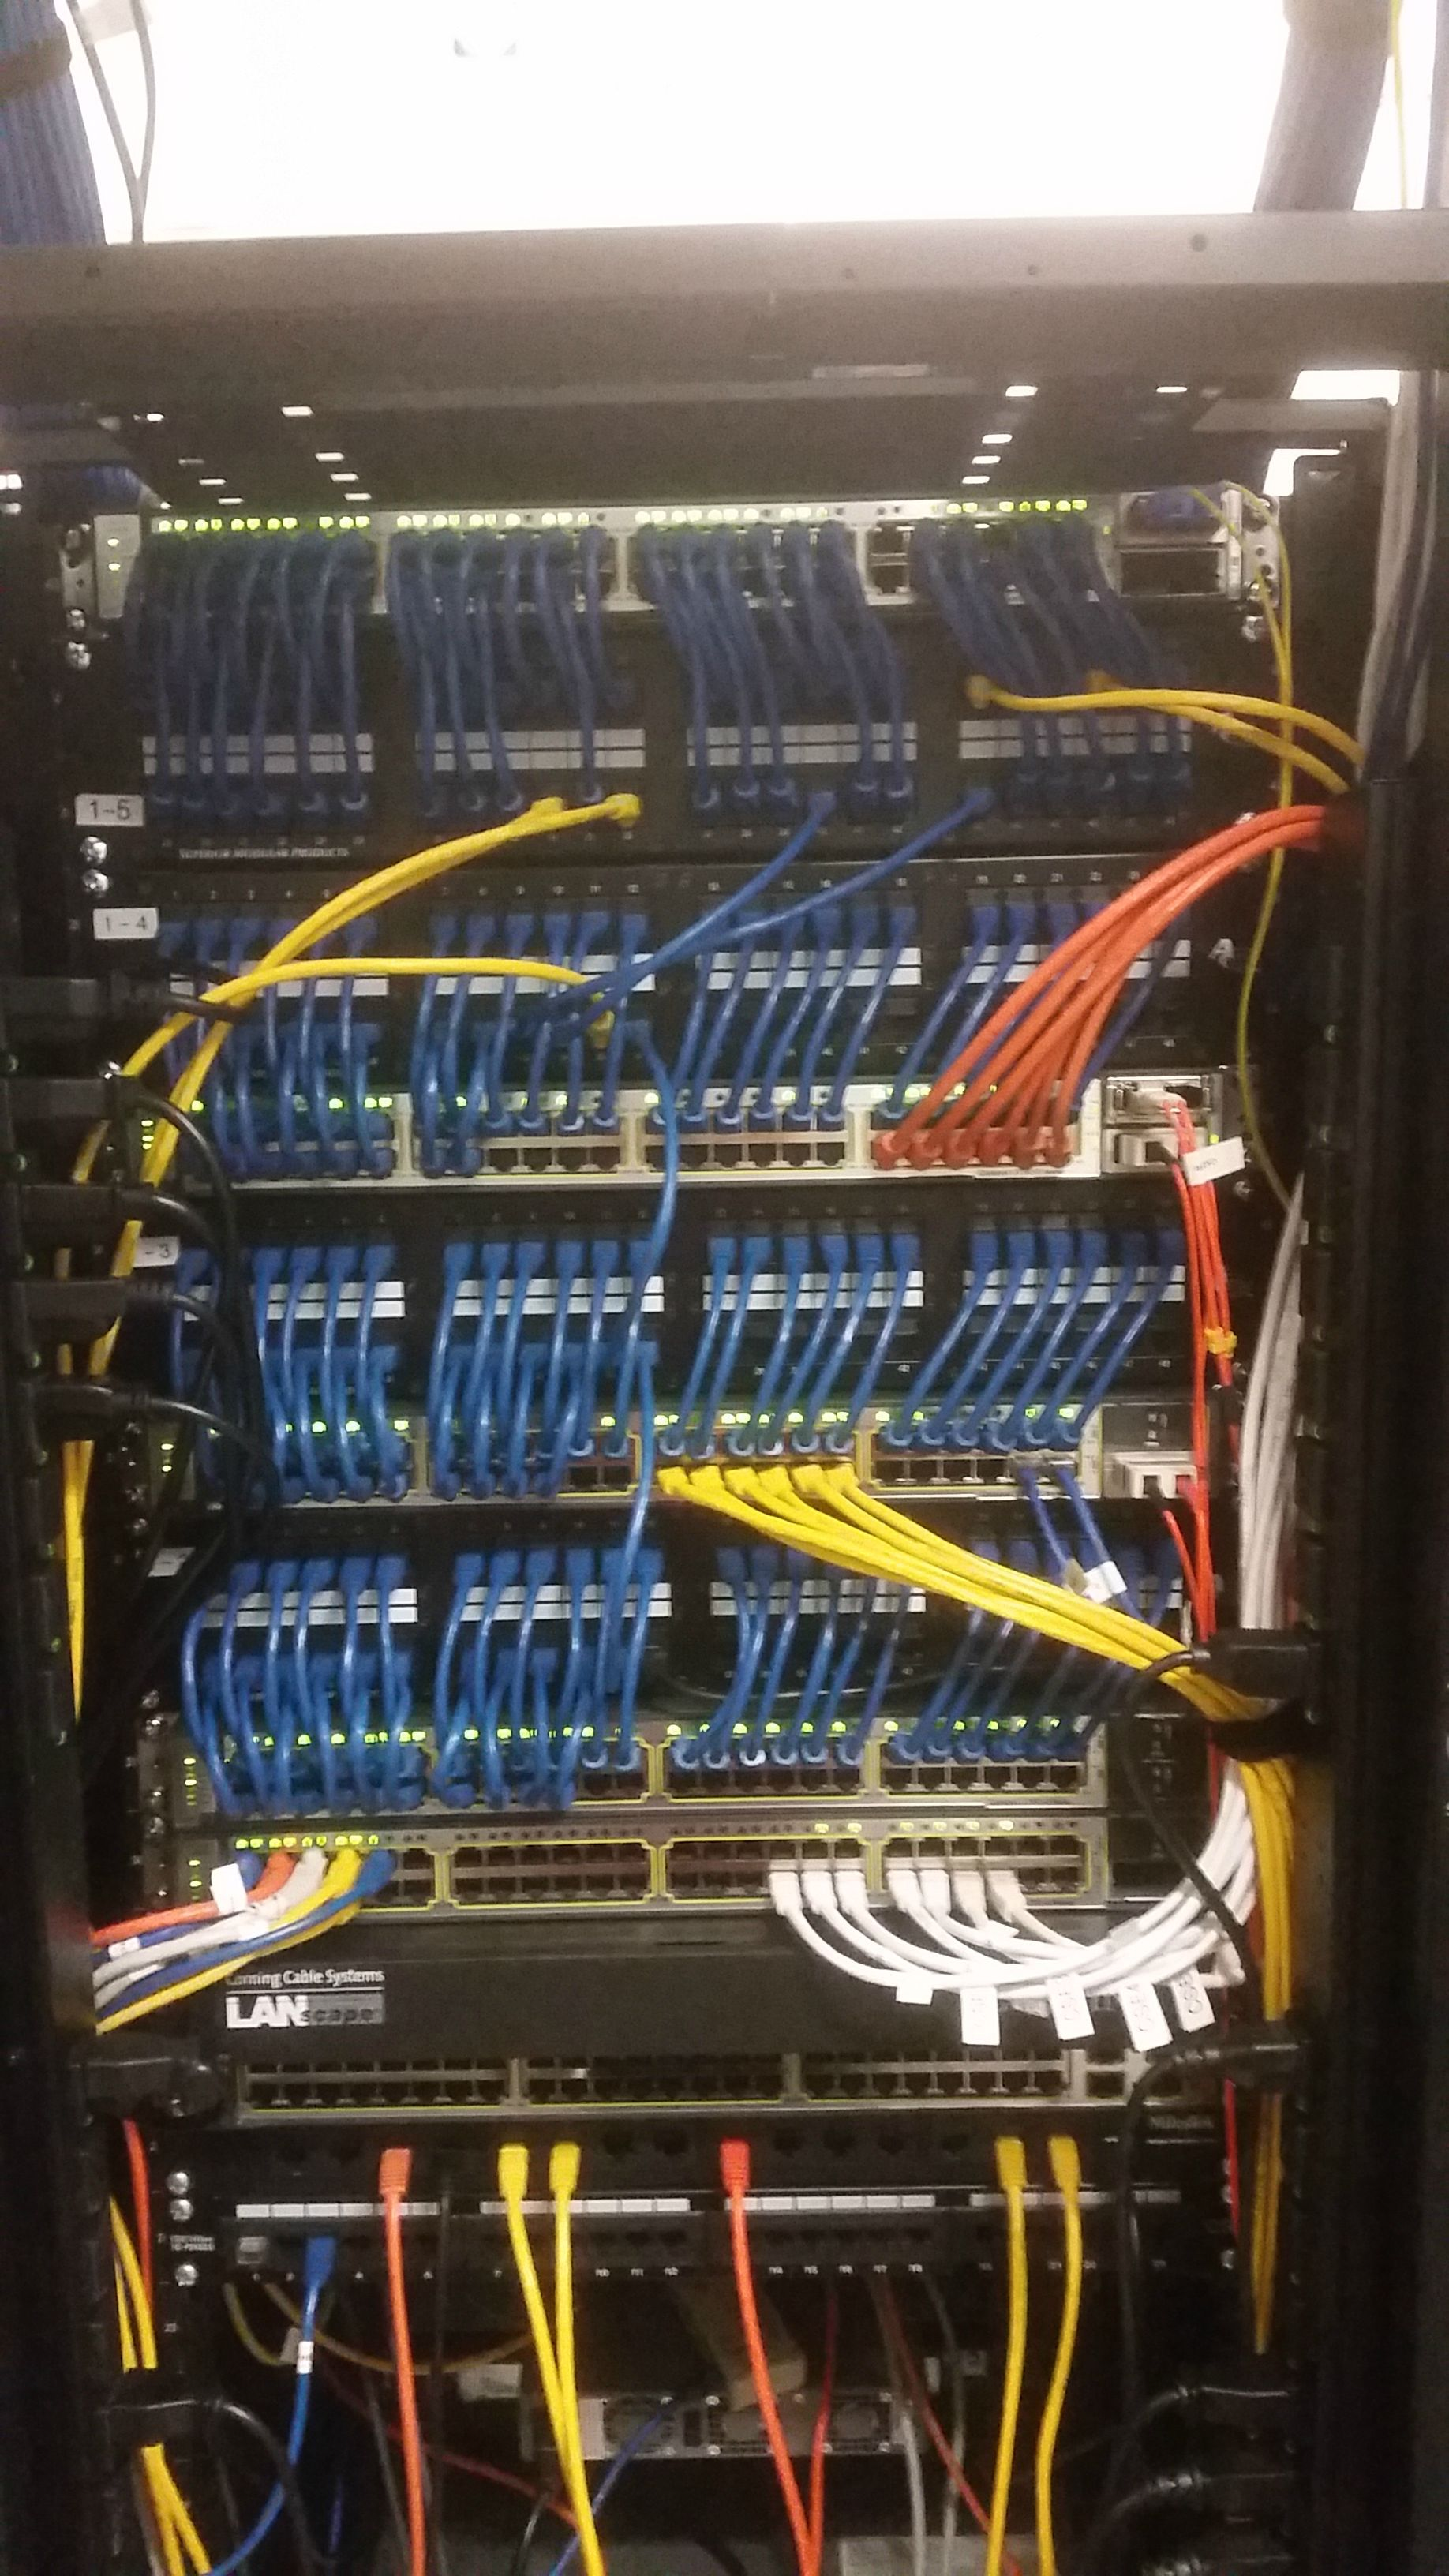 small resolution of cleaning up a network rack cisco switches into patch panels clean job believe orange and yellow are powered but could be wrong